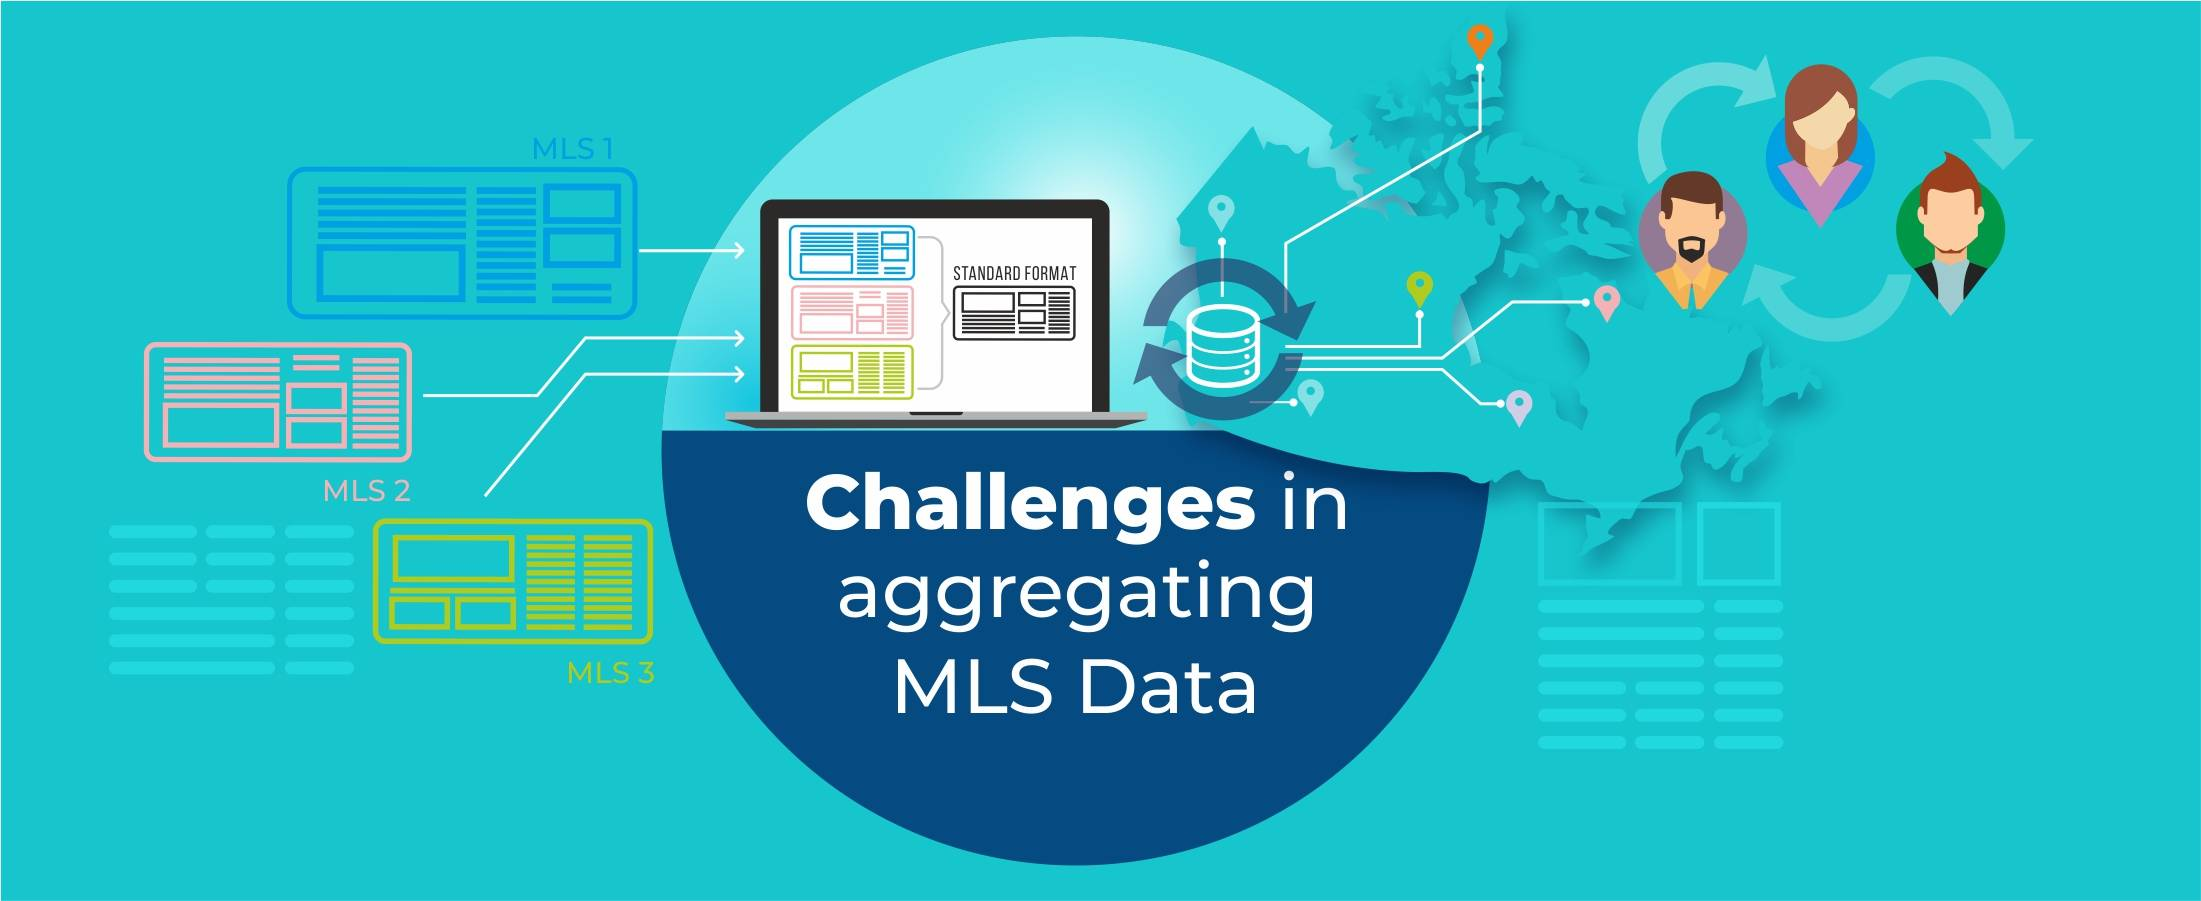 Challenges in Aggregating MLS Data